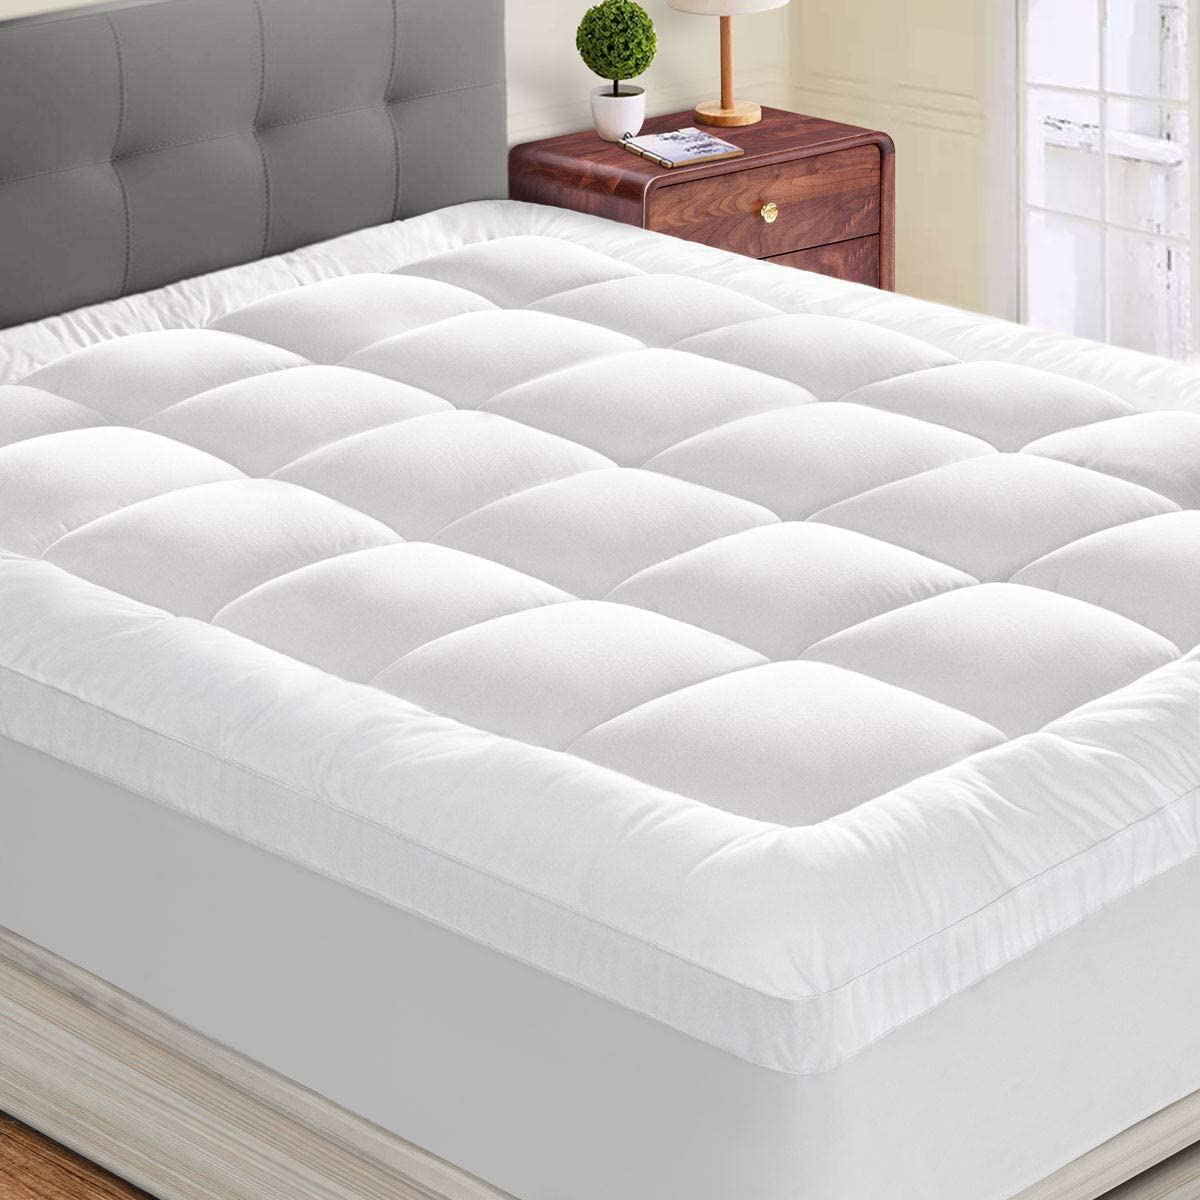 """HYLEORY Queen Mattress Topper Extra Thick Stretches up 8-21 Deep Pocket - 2"""" Thick Double Border Overfilled Quilted Fitted Mattress Pad Breathable Pillowtop with Snow Down Alternative"""